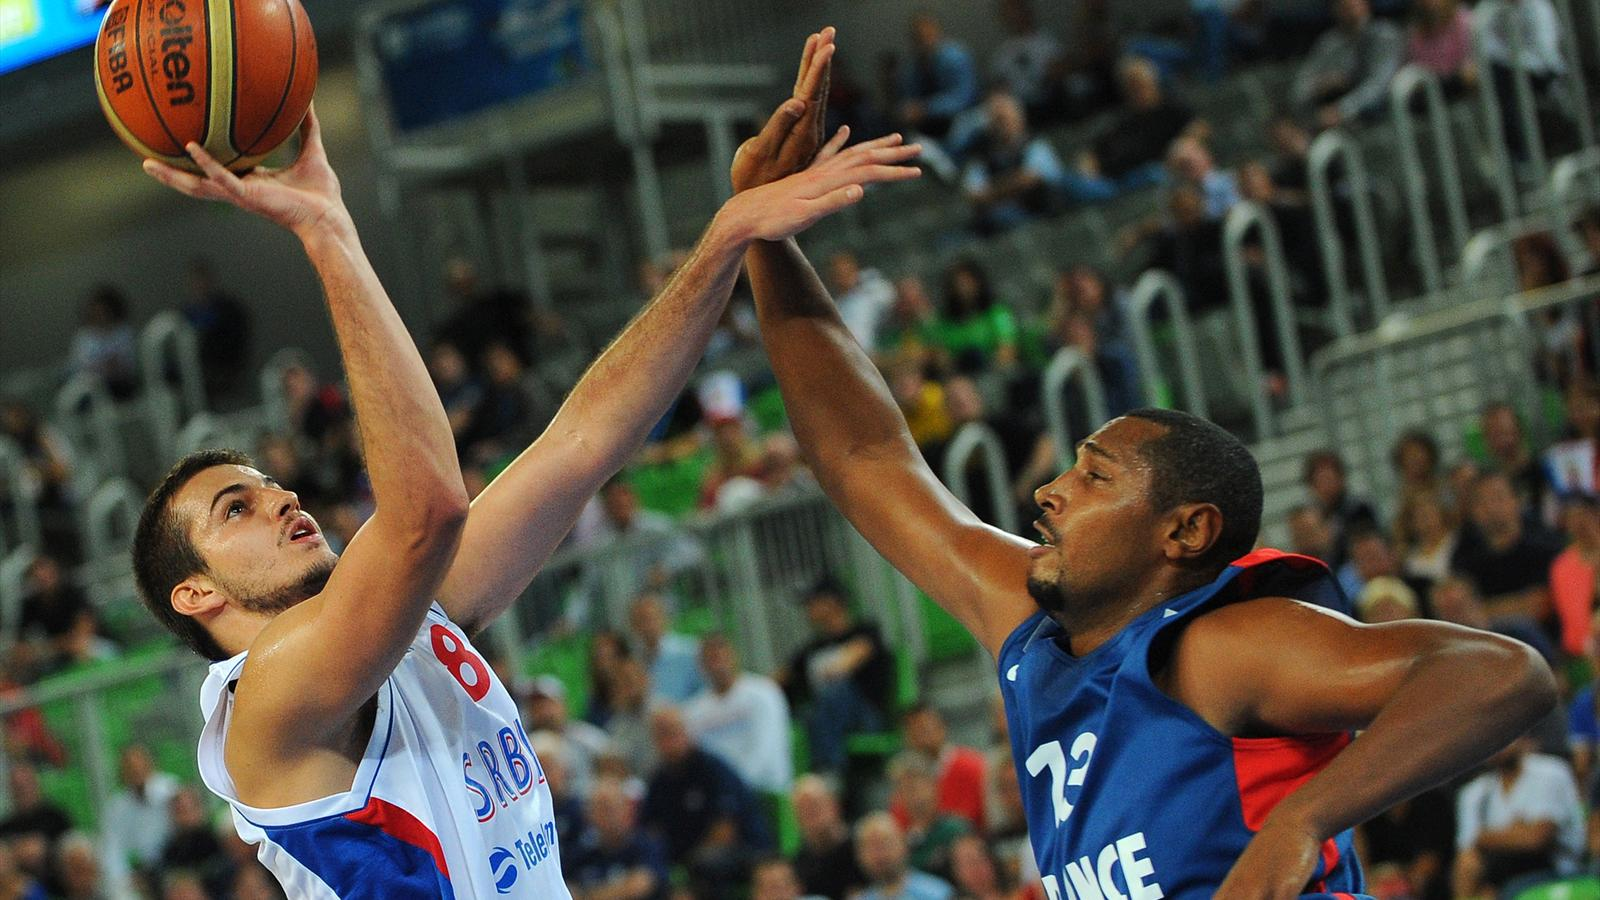 Basketball match France Croatie en direct live streaming